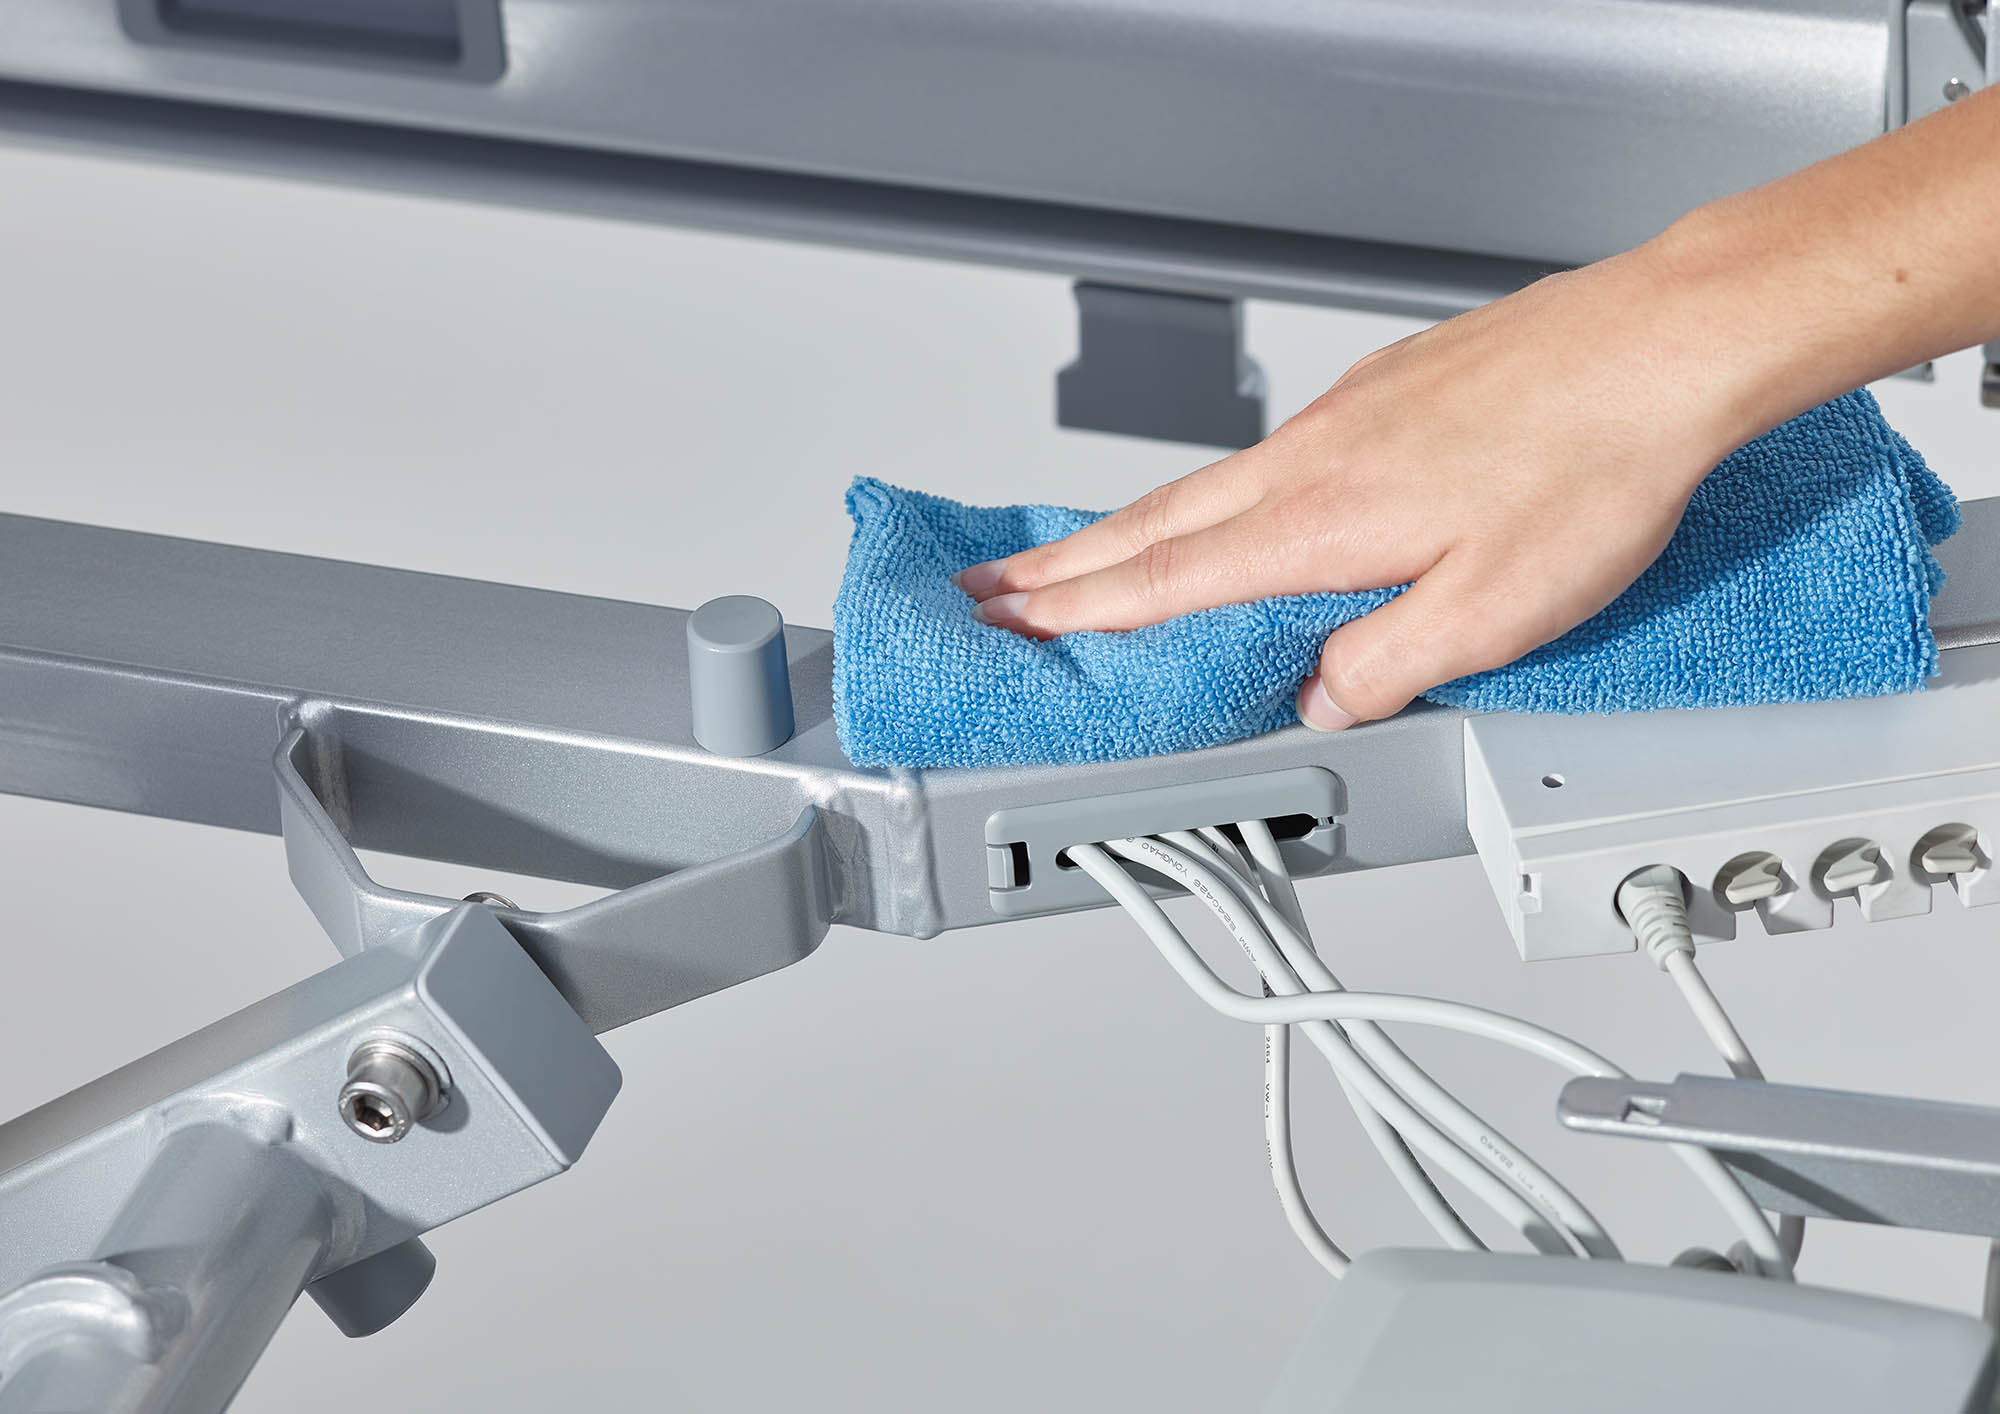 Easy to clean thanks to concealed cable routing on the Puro hospital bed